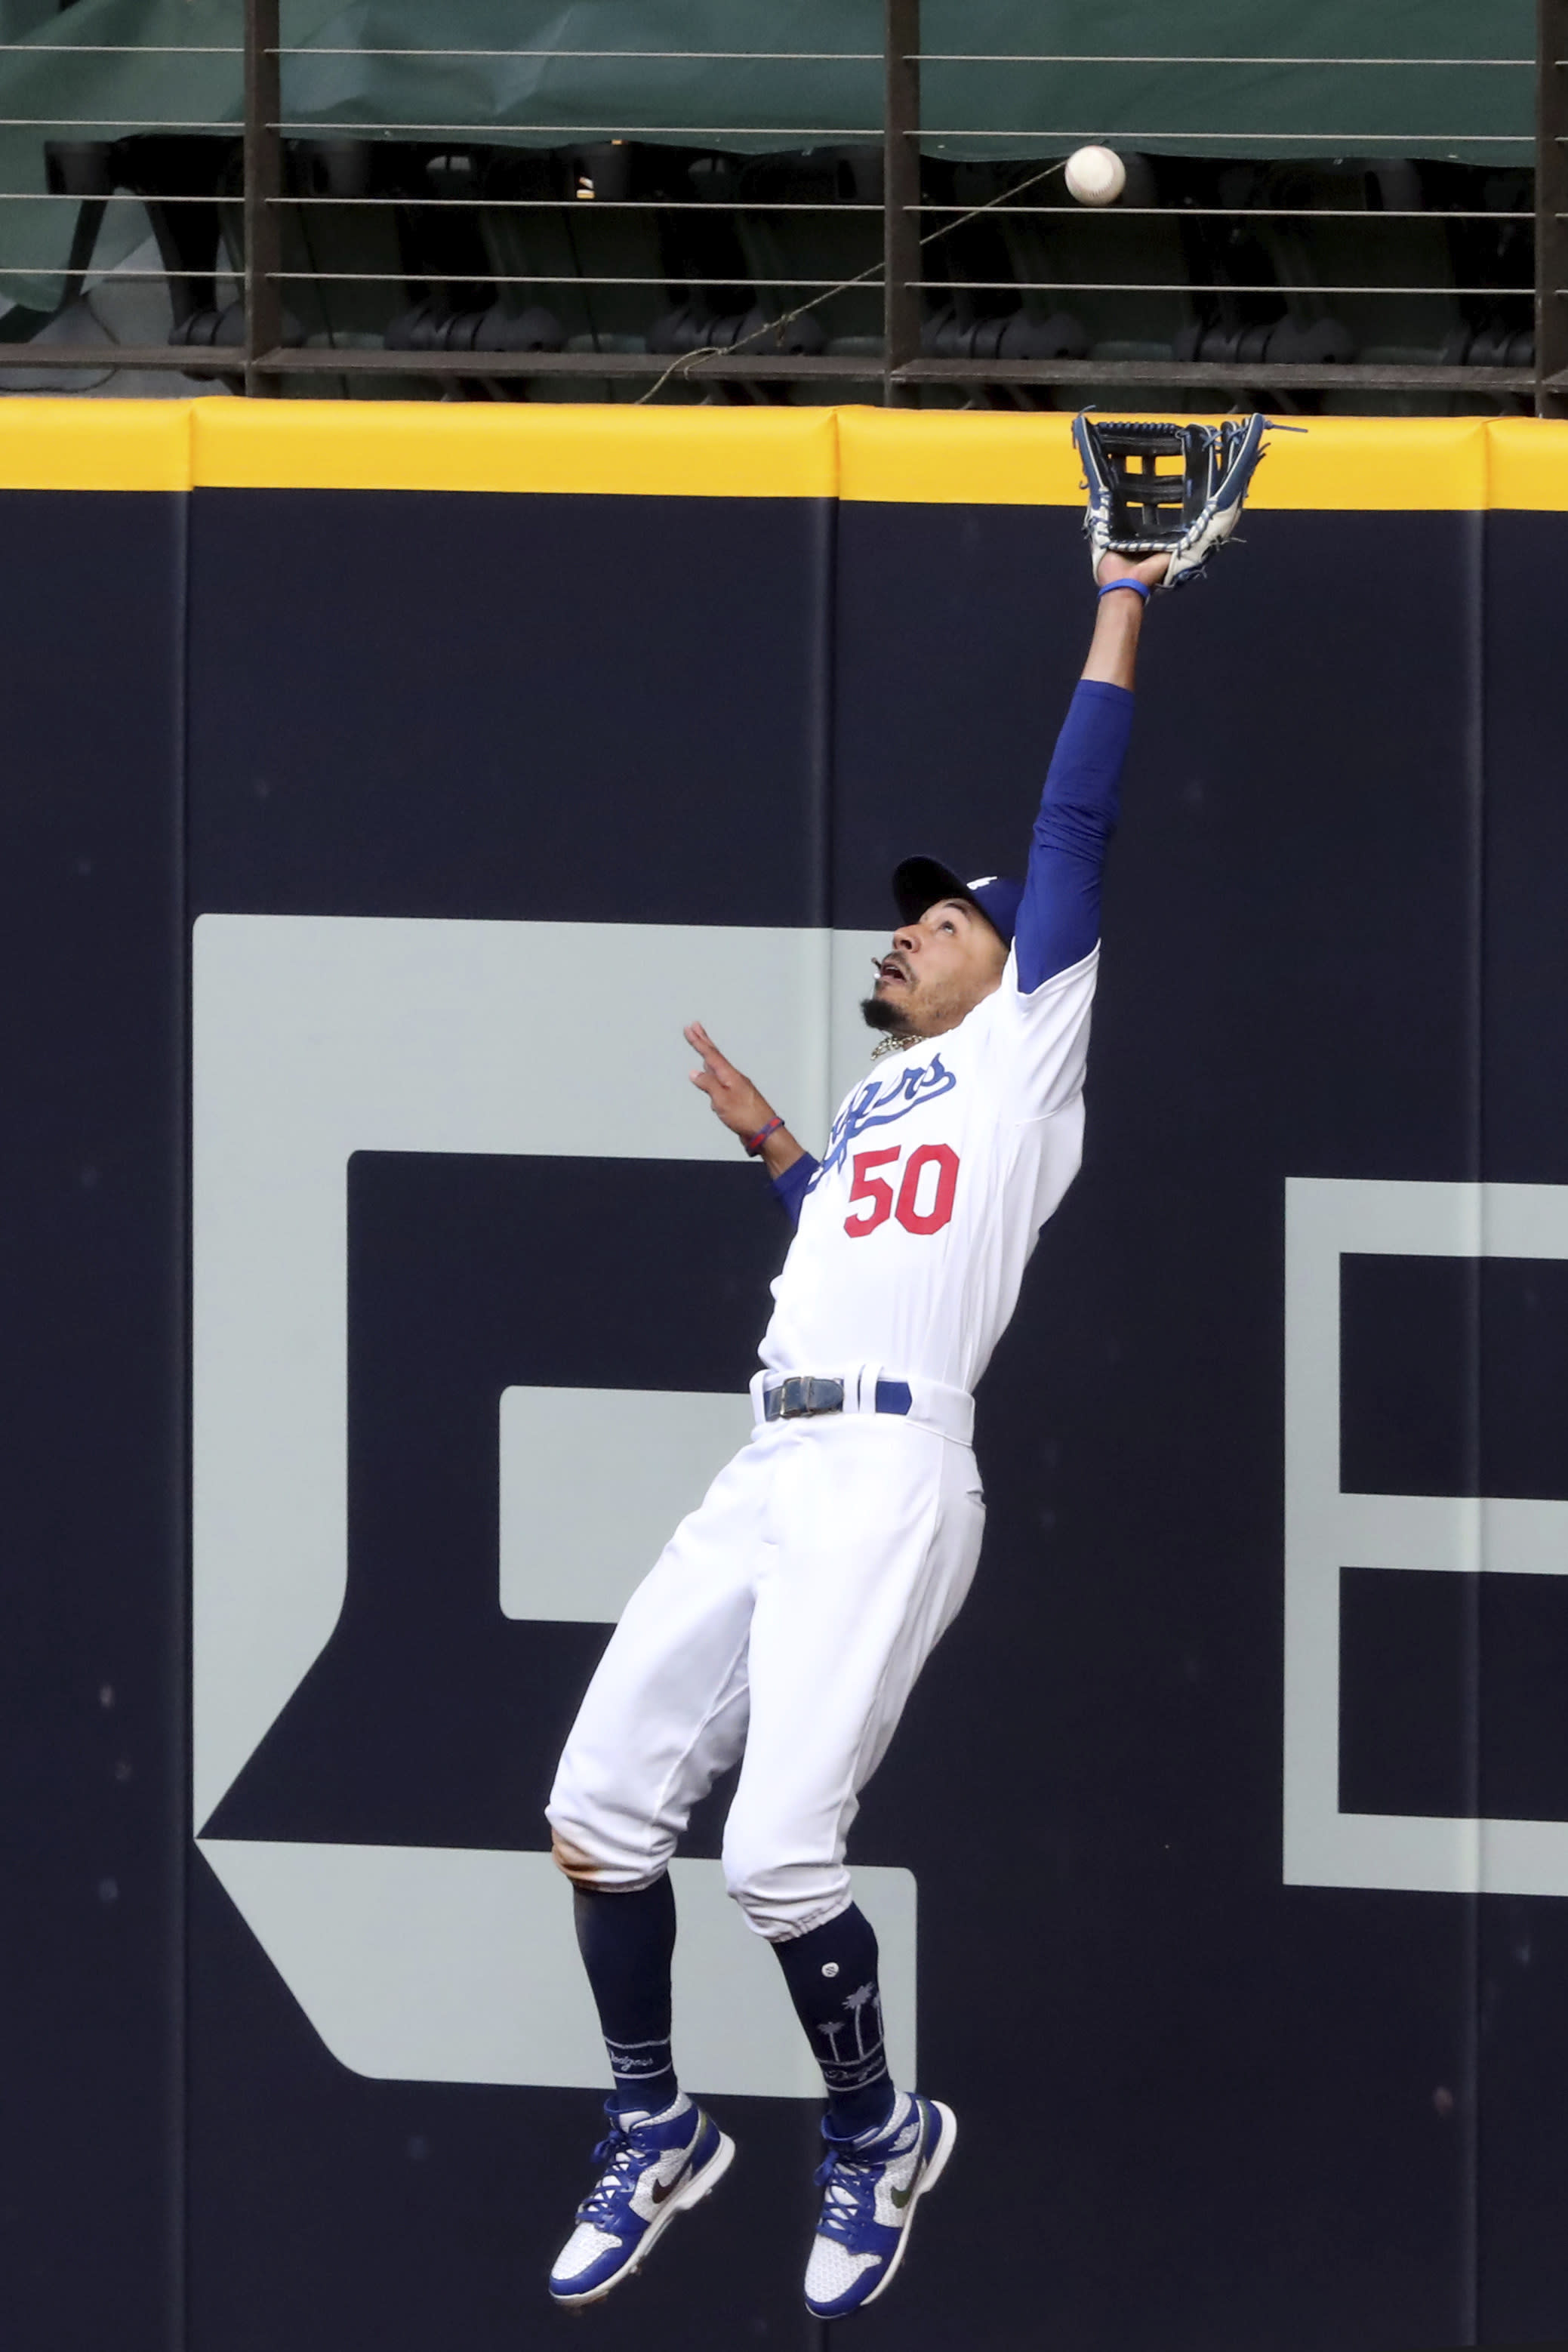 Los Angeles Dodgers right fielder Mookie Betts makes a catch against the outfield wall robbing a home run from Atlanta Braves designated hitter Marcell Ozuna of a hit during the fifth inning in Game 6 of baseball's National League Championship Series, Saturday, Oct. 17, 2020, in Arlington, Texas. (Curtis Compton/Atlanta Journal-Constitution via AP)